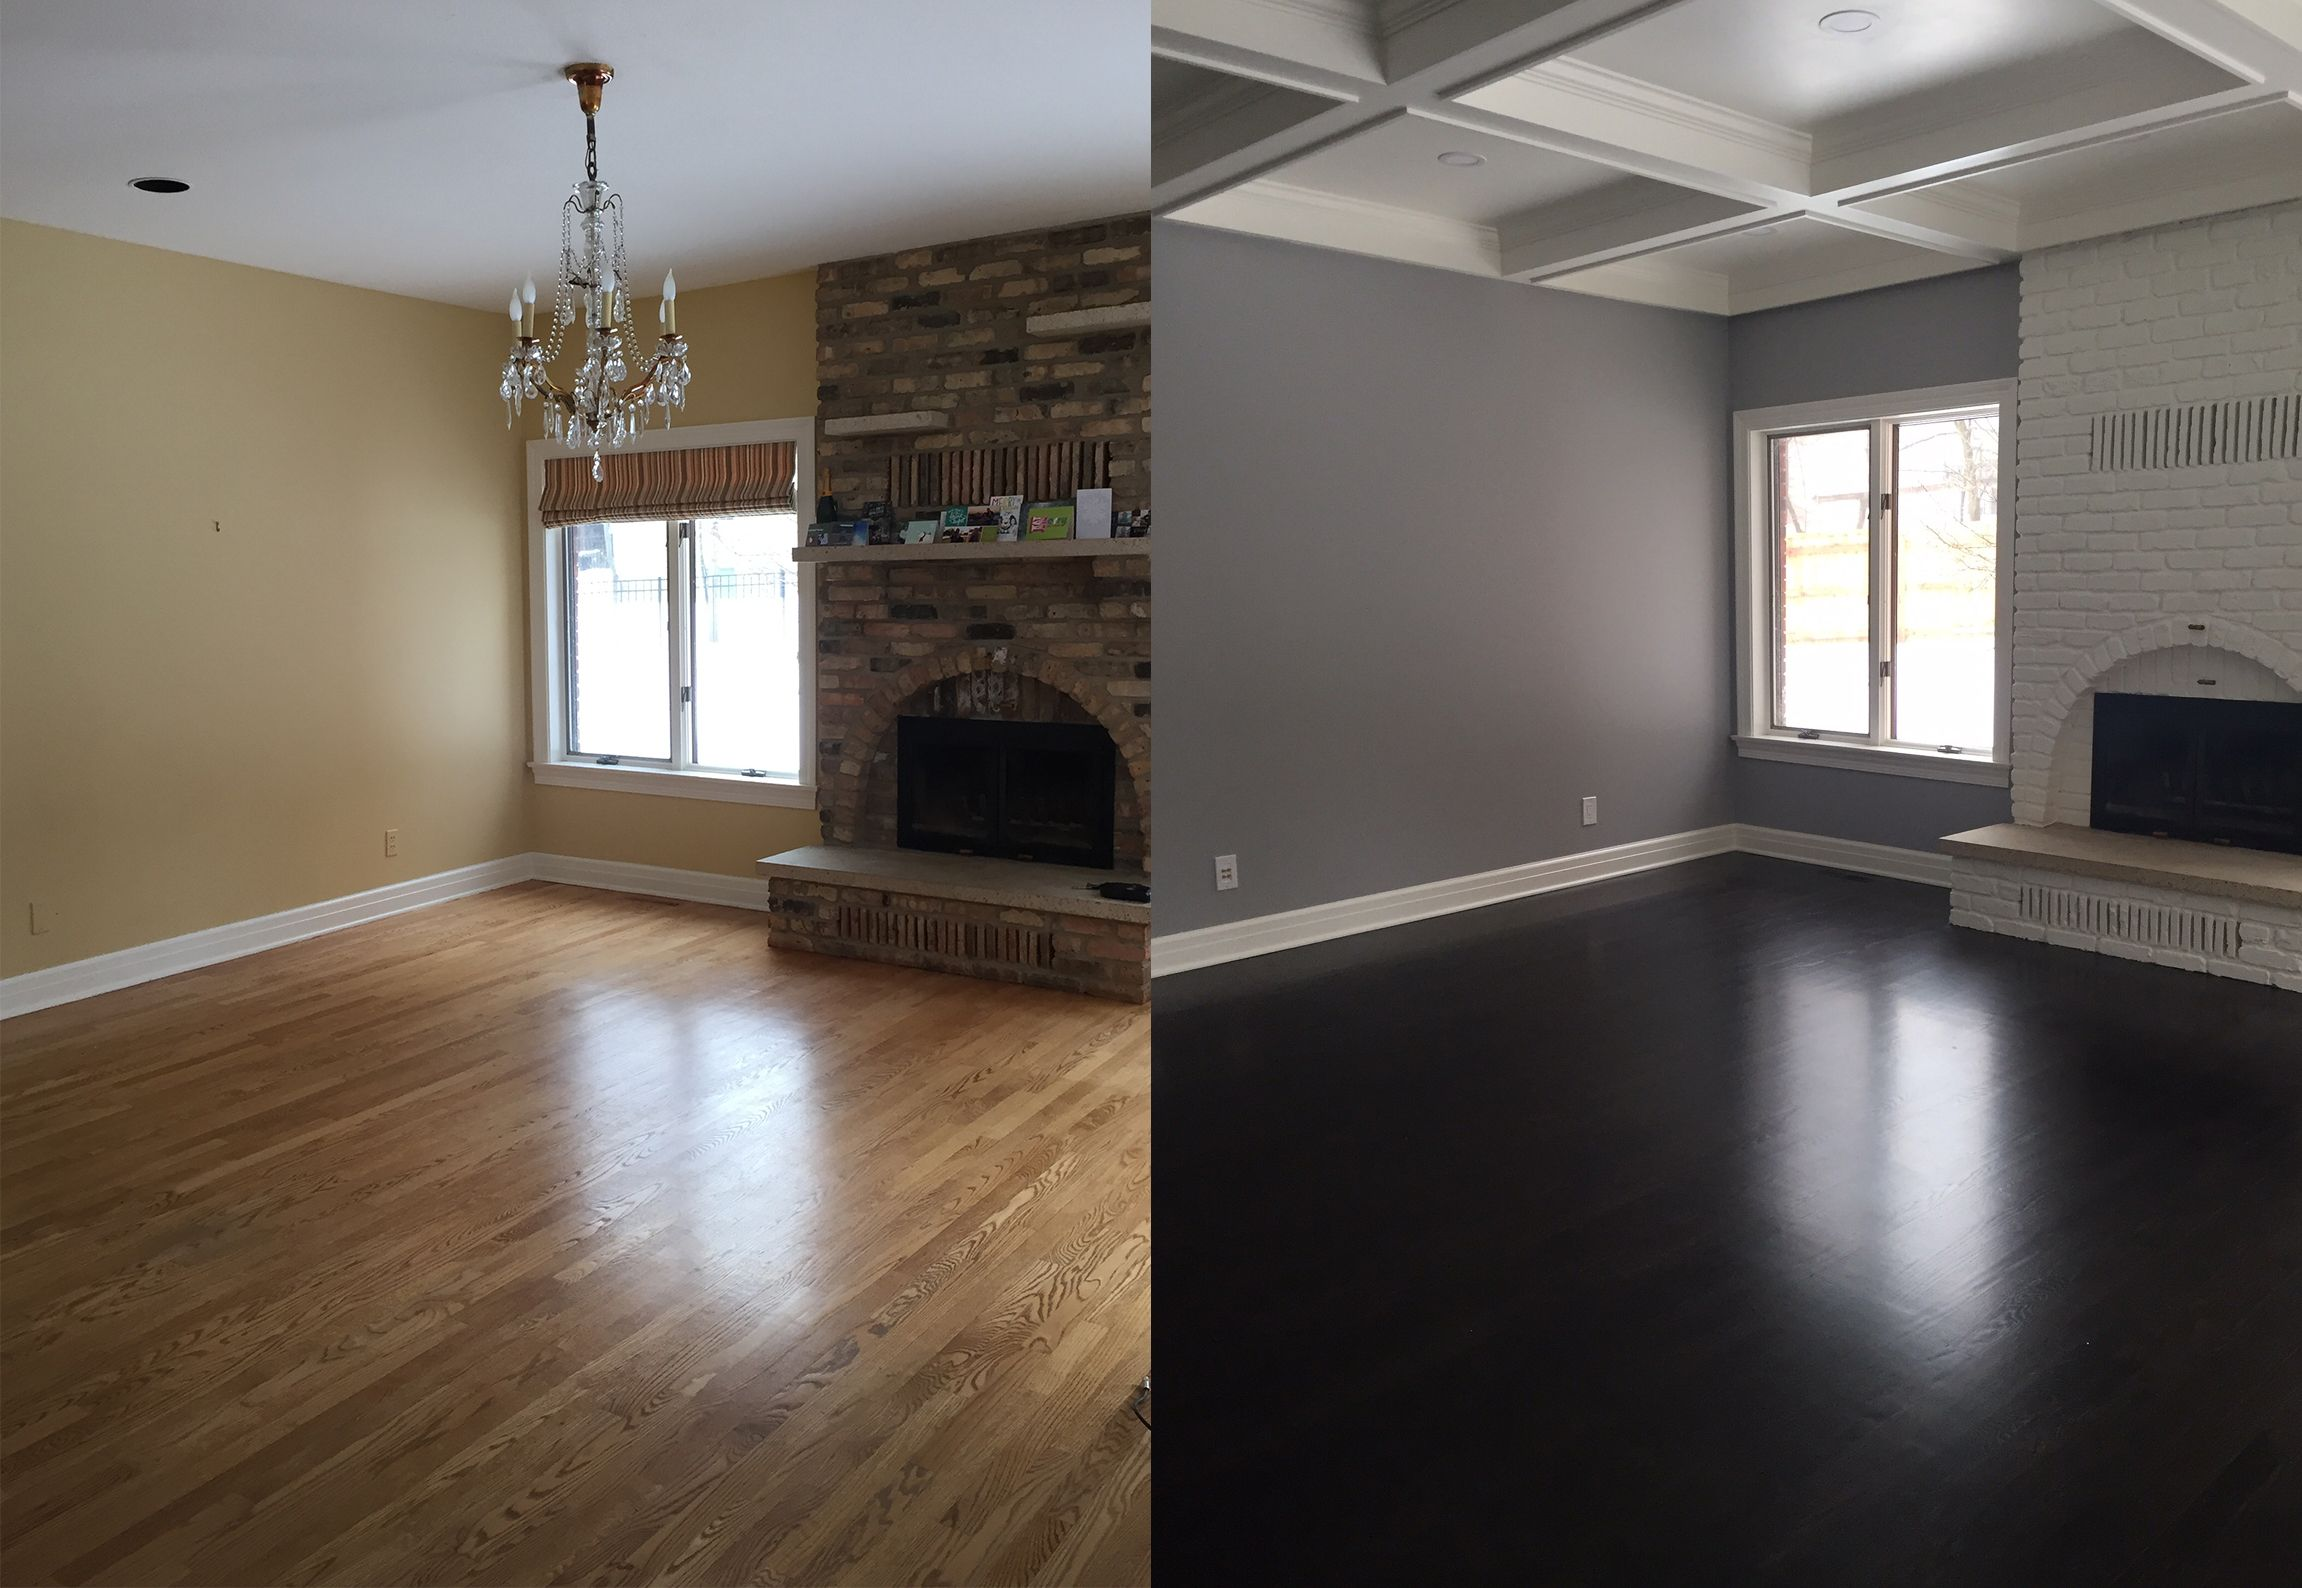 Another Before And After Set Of Photos Of Our Hearth Room